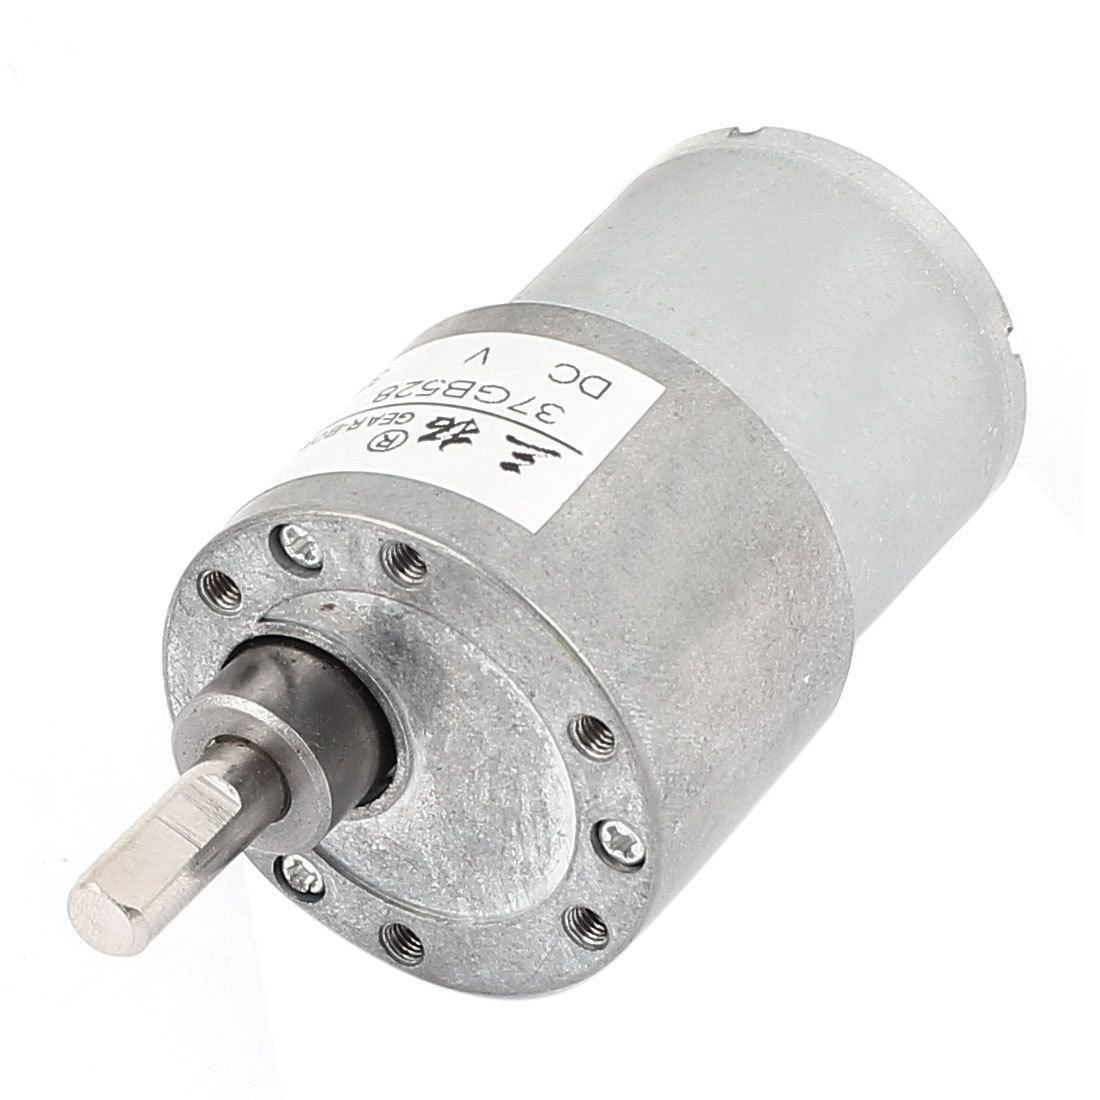 DC 24V 75RPM 0.15A 1.8KG.cm DC Gear Box Reducer Variable Speed Motor Reversible